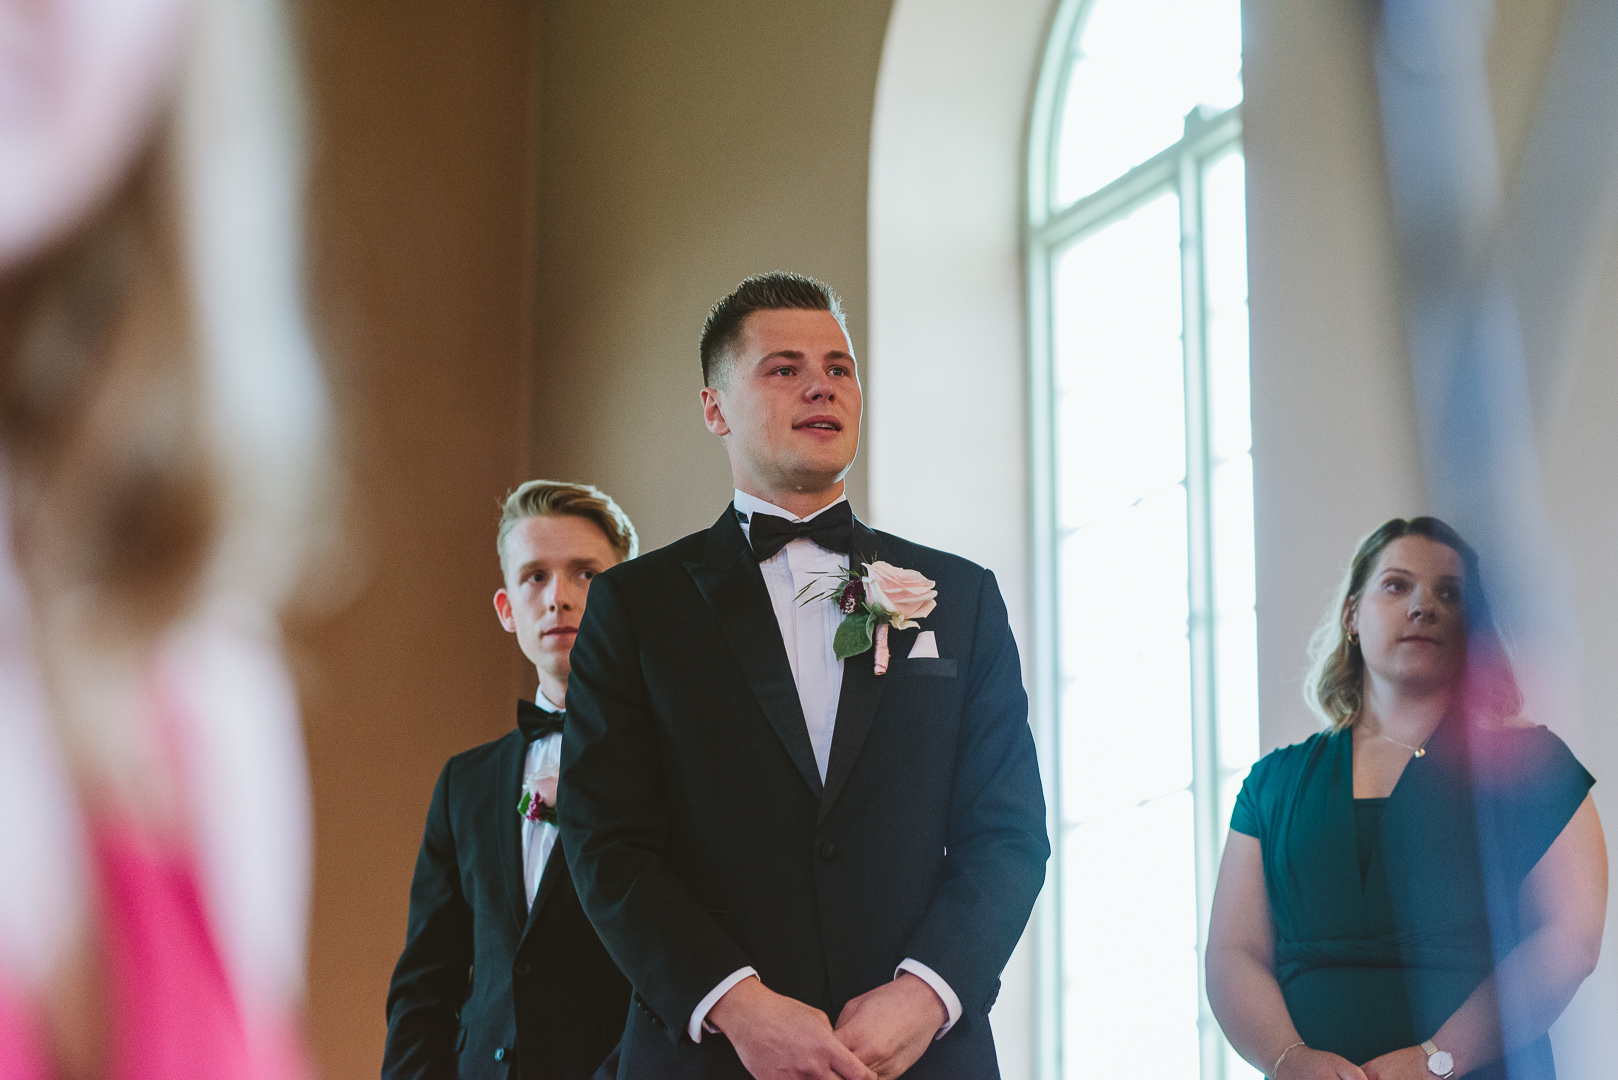 Groom Reacting to Bride - From my best wedding photos from 2019